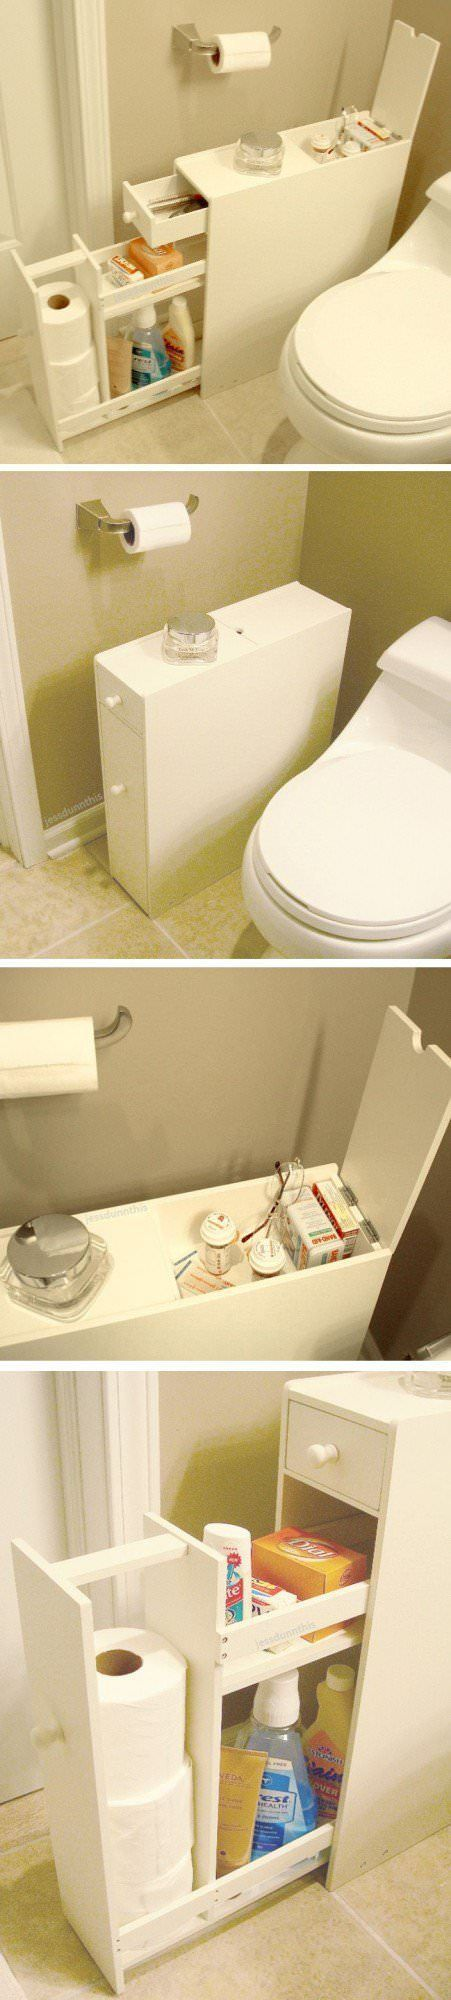 Small Bathrooms Diy best 25+ diy small bathrooms ideas on pinterest | inspired small